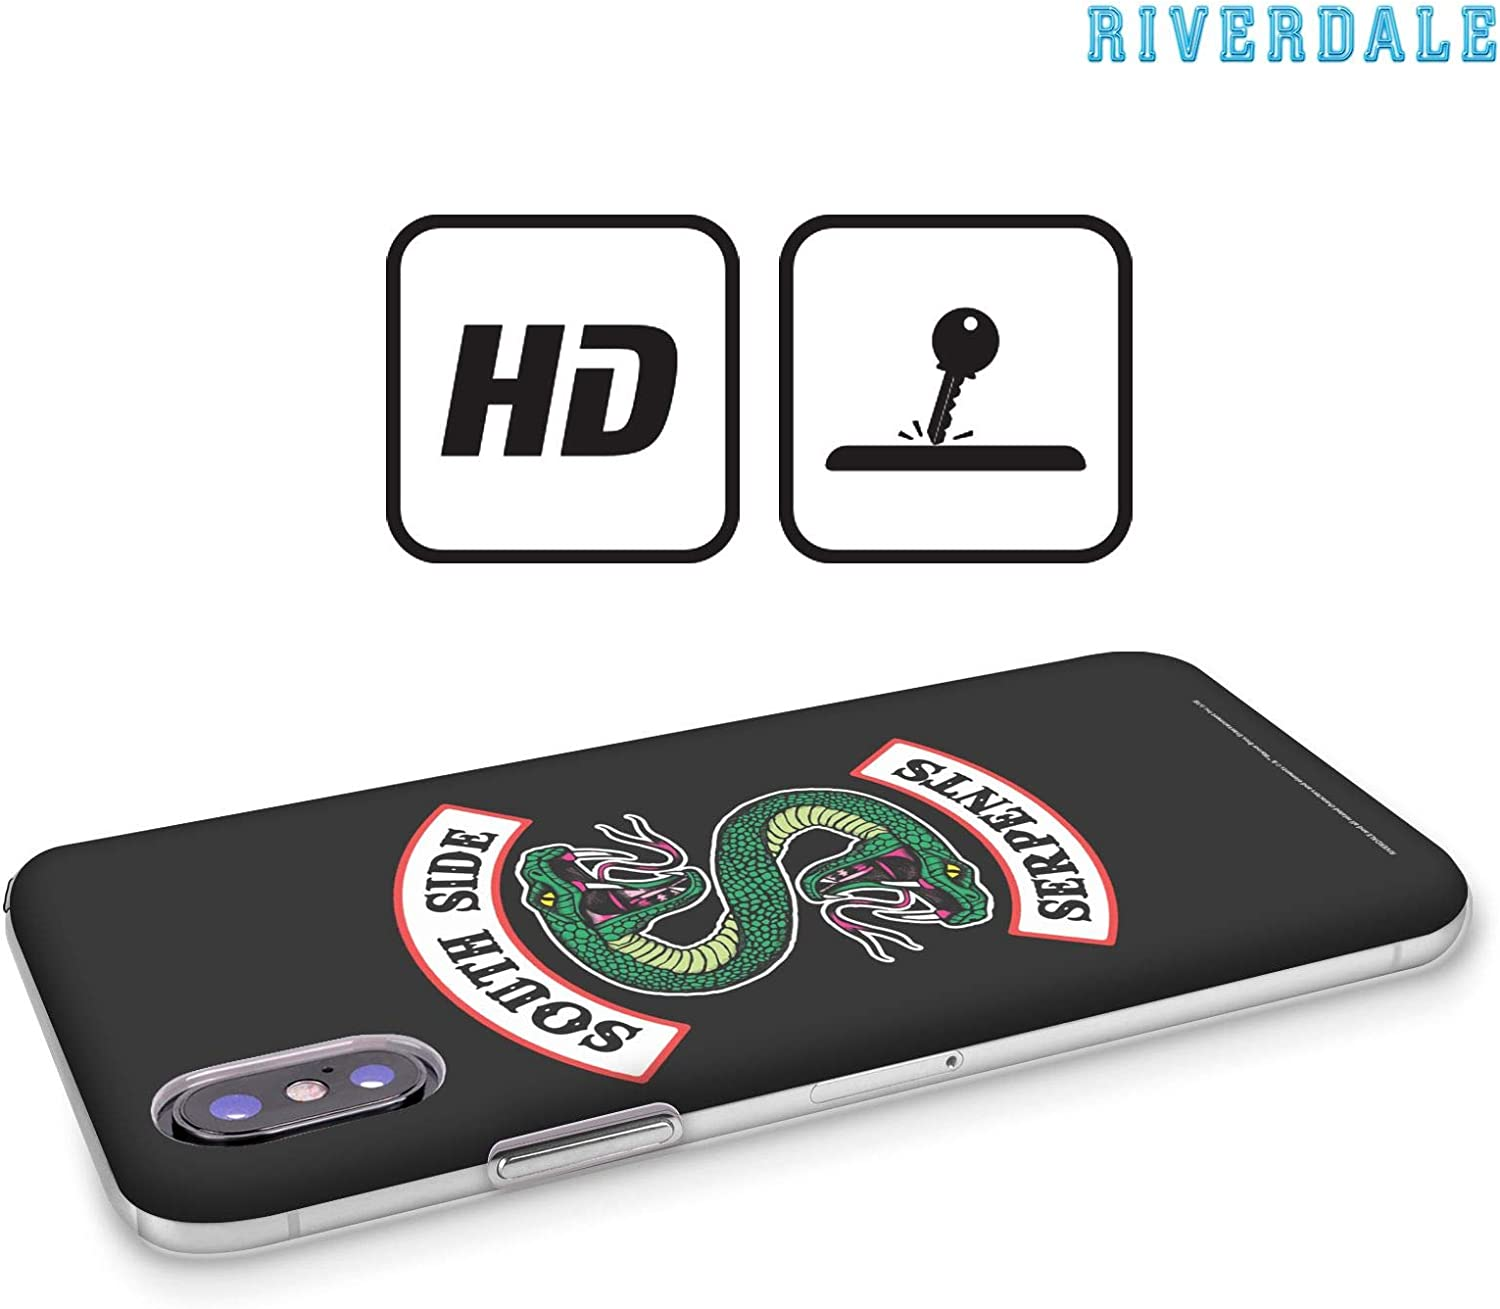 Head Case Designs Oficial Riverdale Serpientes del Lado Sur Arte Gráfico Carcasa rígida Compatible con Apple iPhone XR: Amazon.es: Electrónica